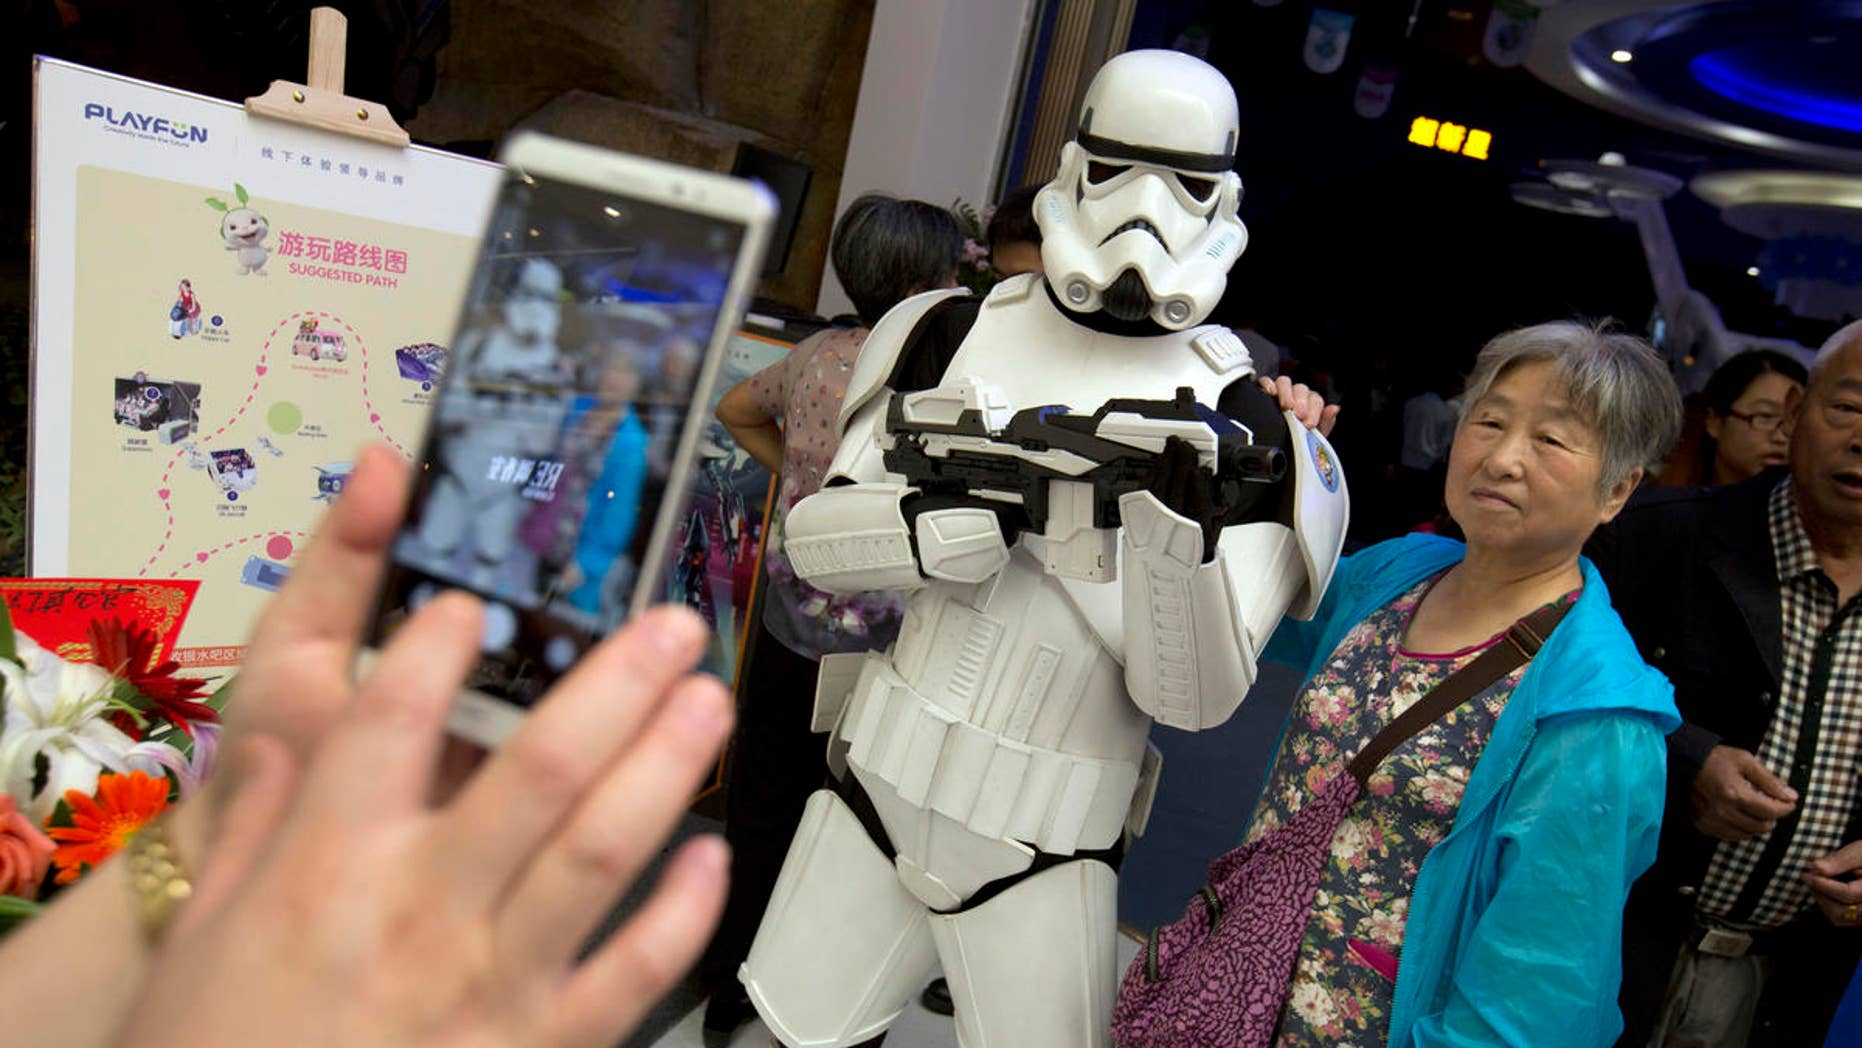 A Chinese woman poses for a photo with a worker dressed in a storm trooper costume at the Wanda Mall outside of the Wanda Cultural Tourism City in Nanchang in southeastern China's Jiangxi province, Saturday, May 28, 2016. The Walt Disney Co. owns the rights to Lucas Film and associated properties.